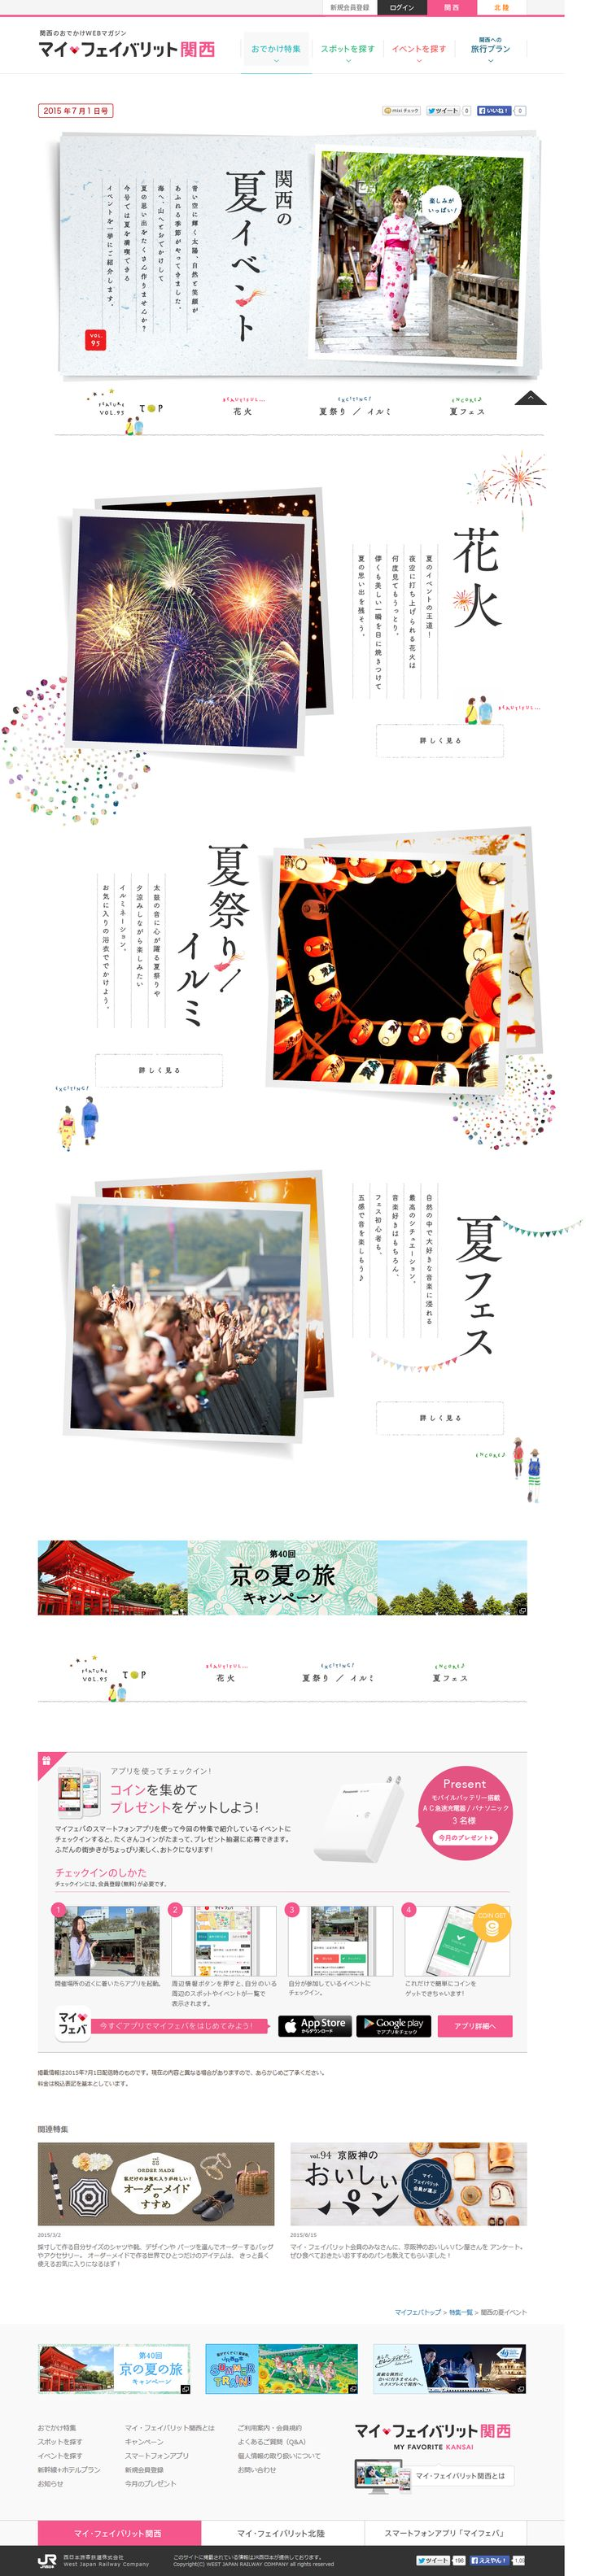 photo layout / typography / illust @ http://www.my-fav.jp/feature/95/